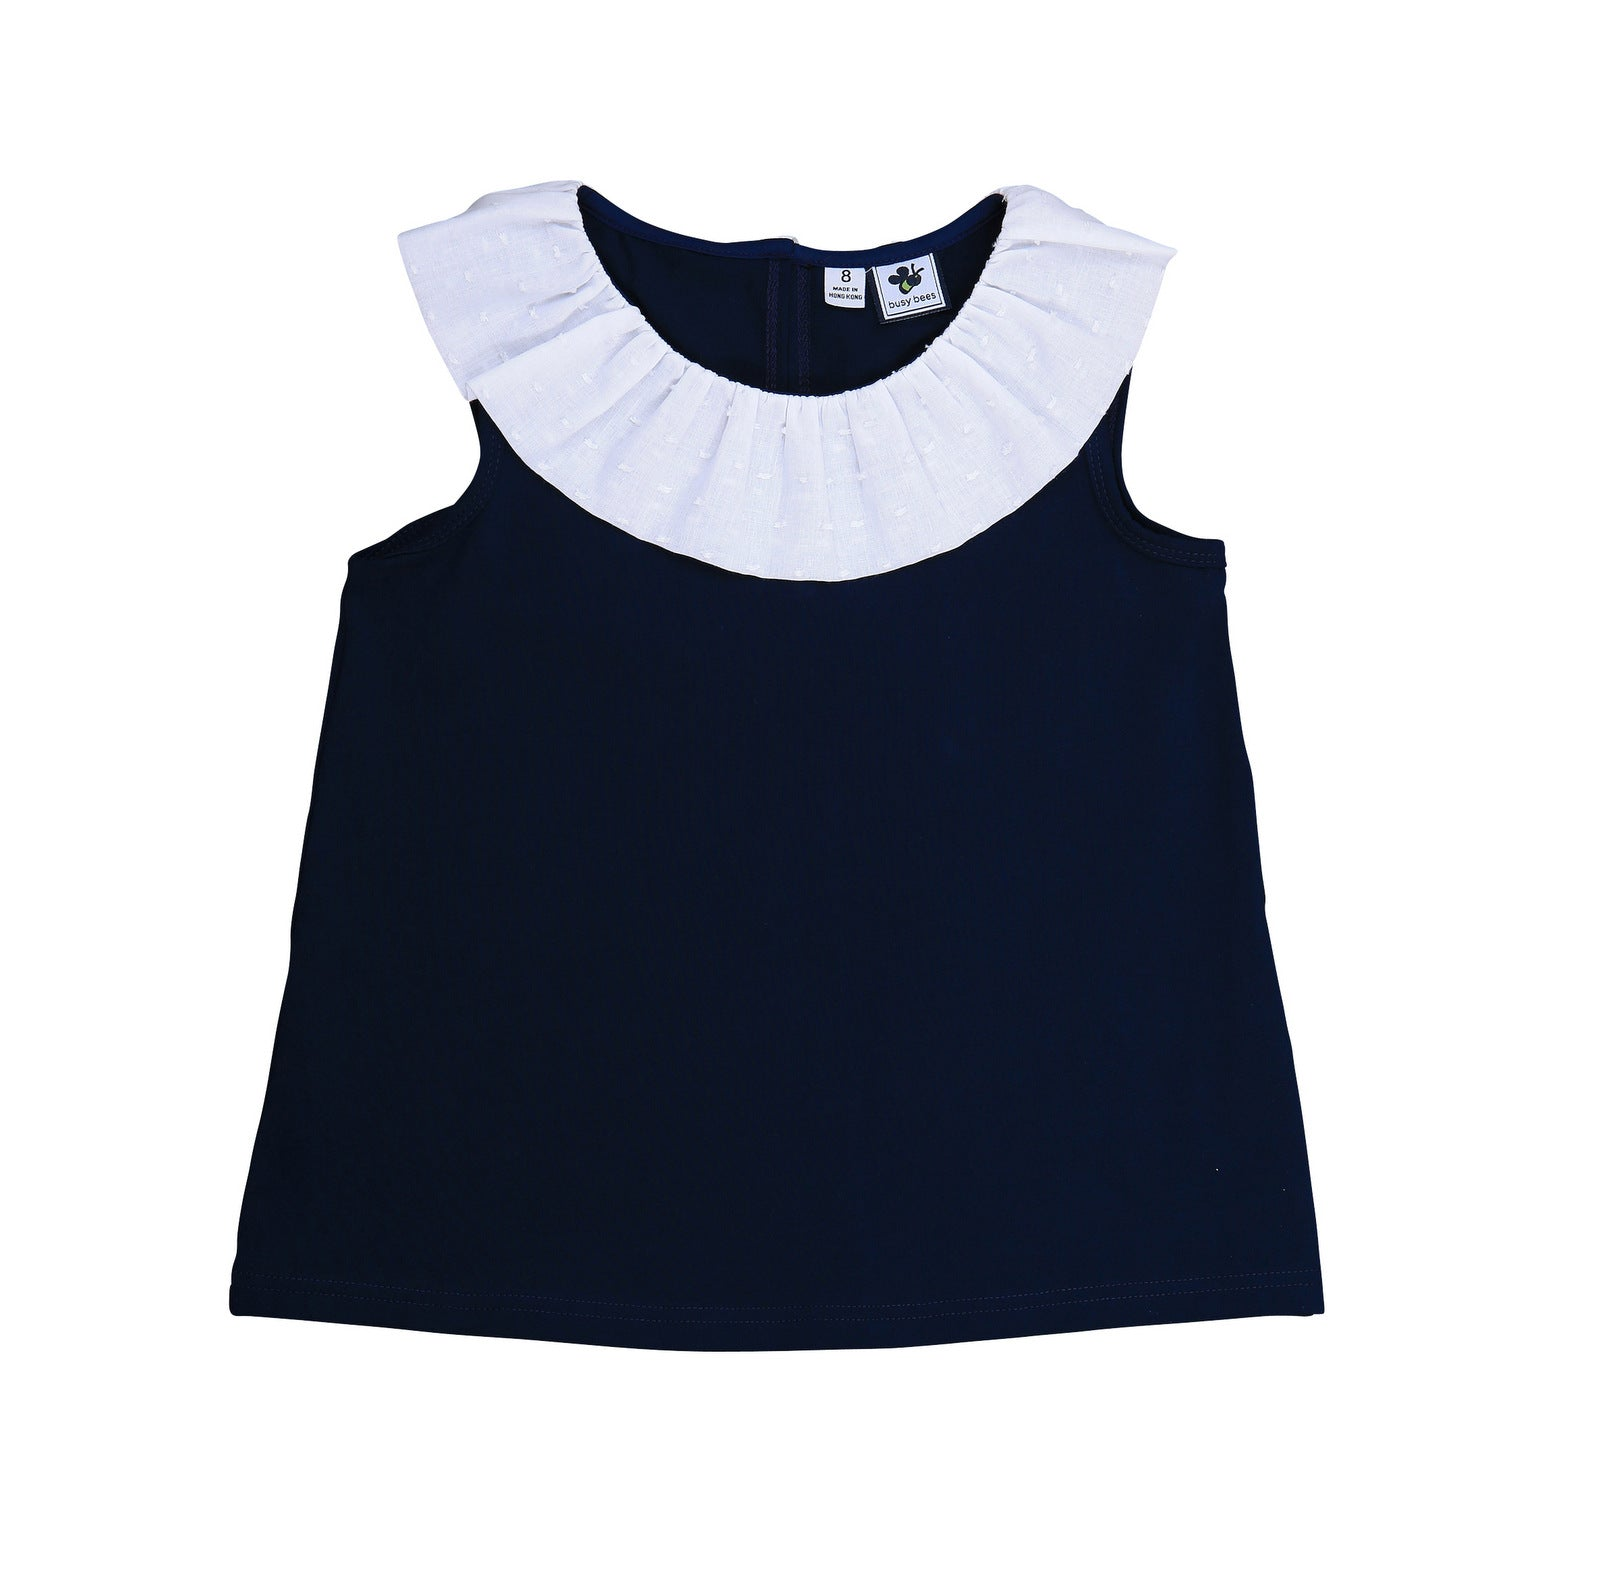 summer ruffle tee navy knit with white swiss dot